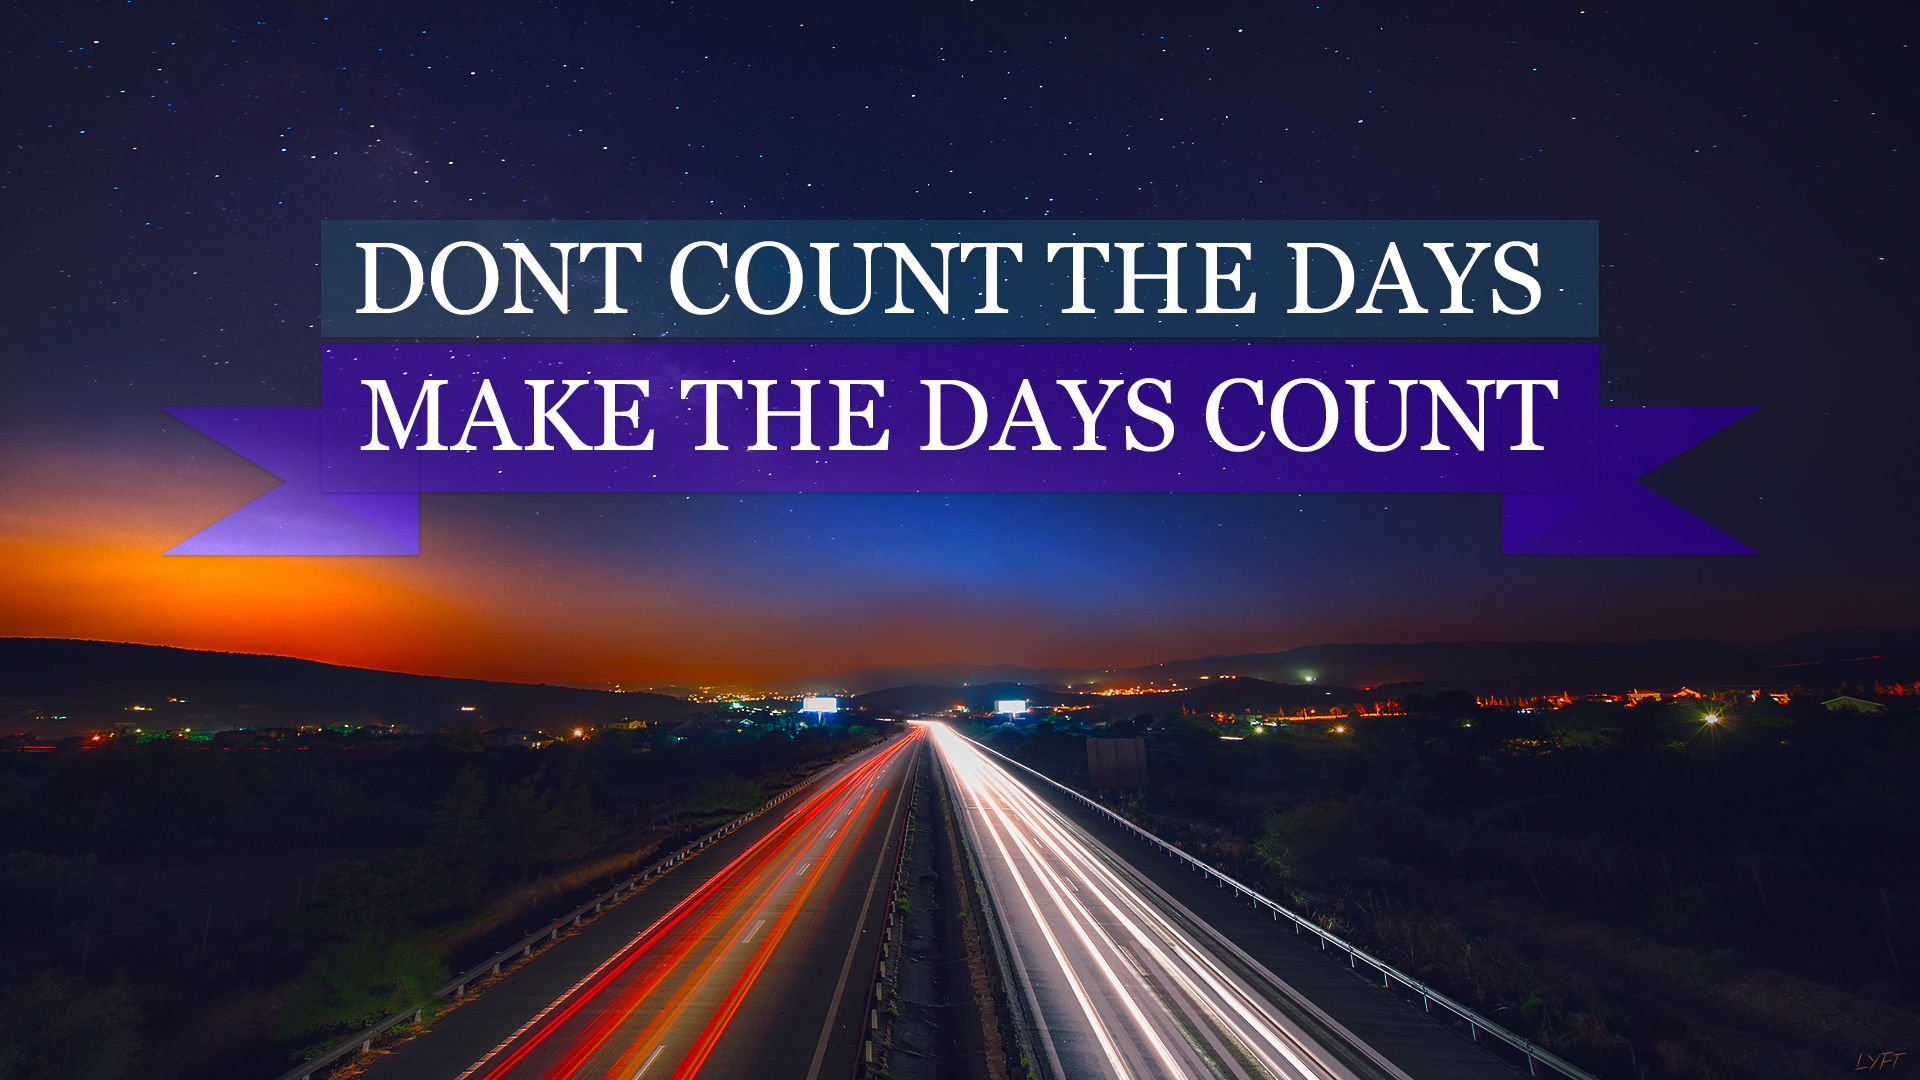 motivational wallpaper makes the days count - hd desktop wallpapers